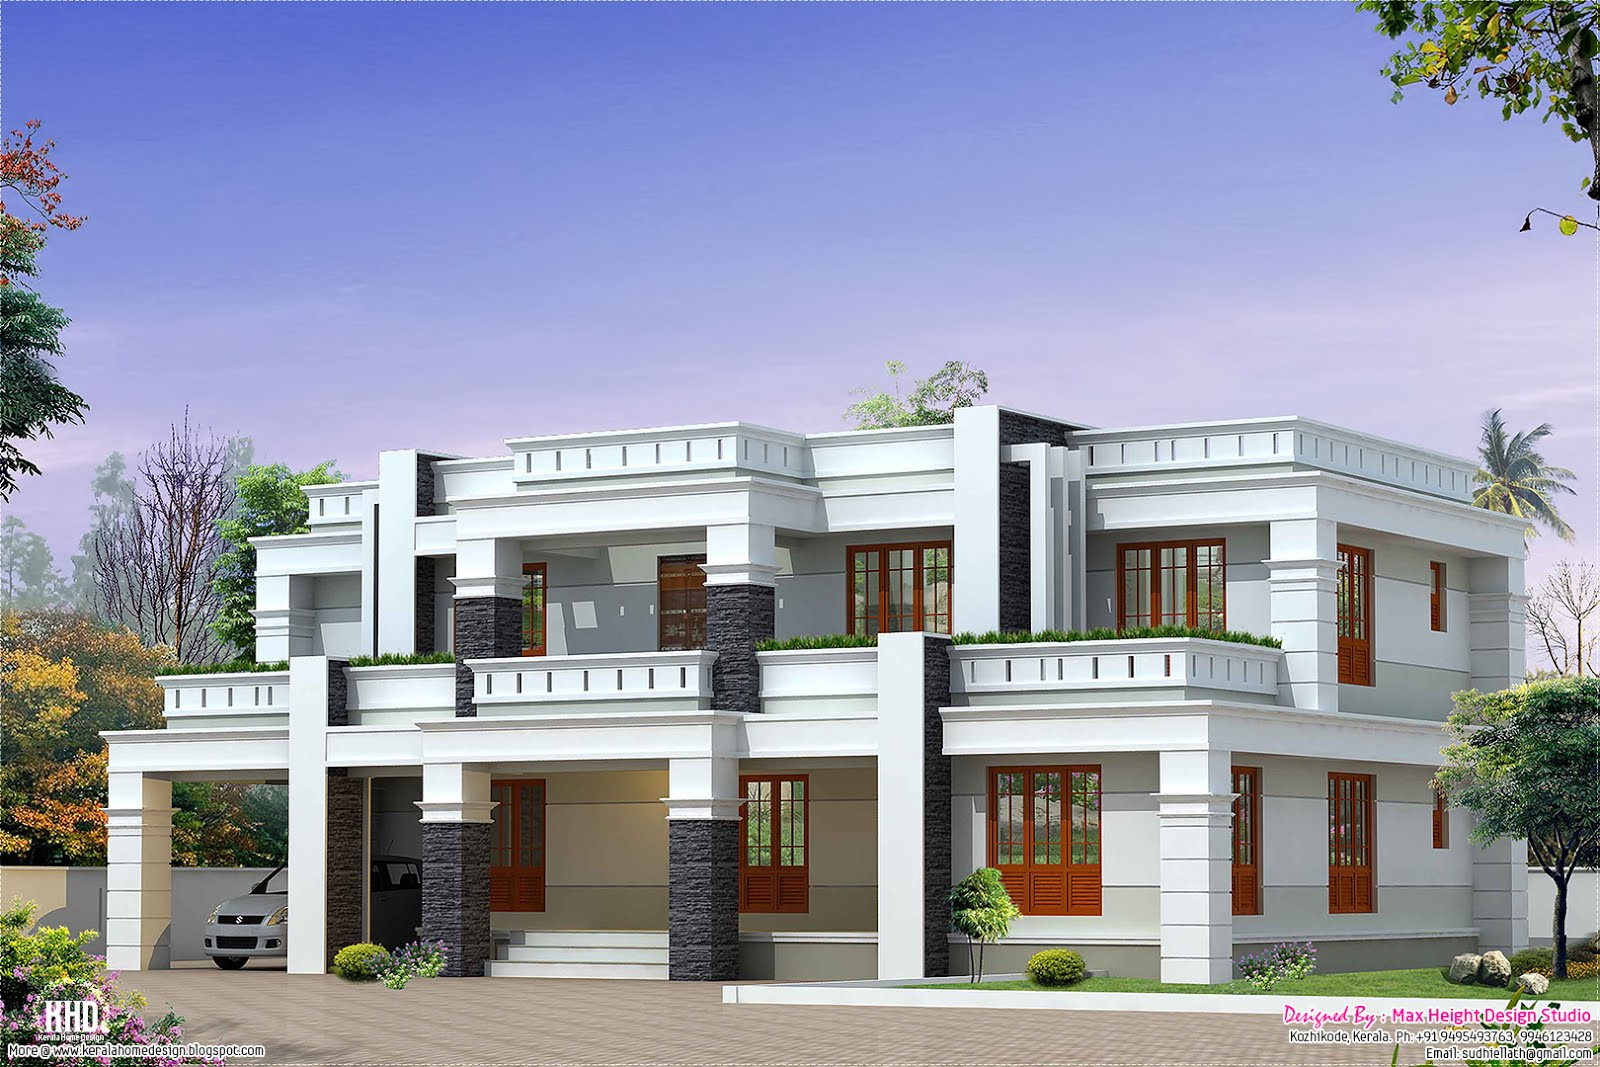 Flat roof luxury home design kerala home design and for Kerala home design flat roof elevation